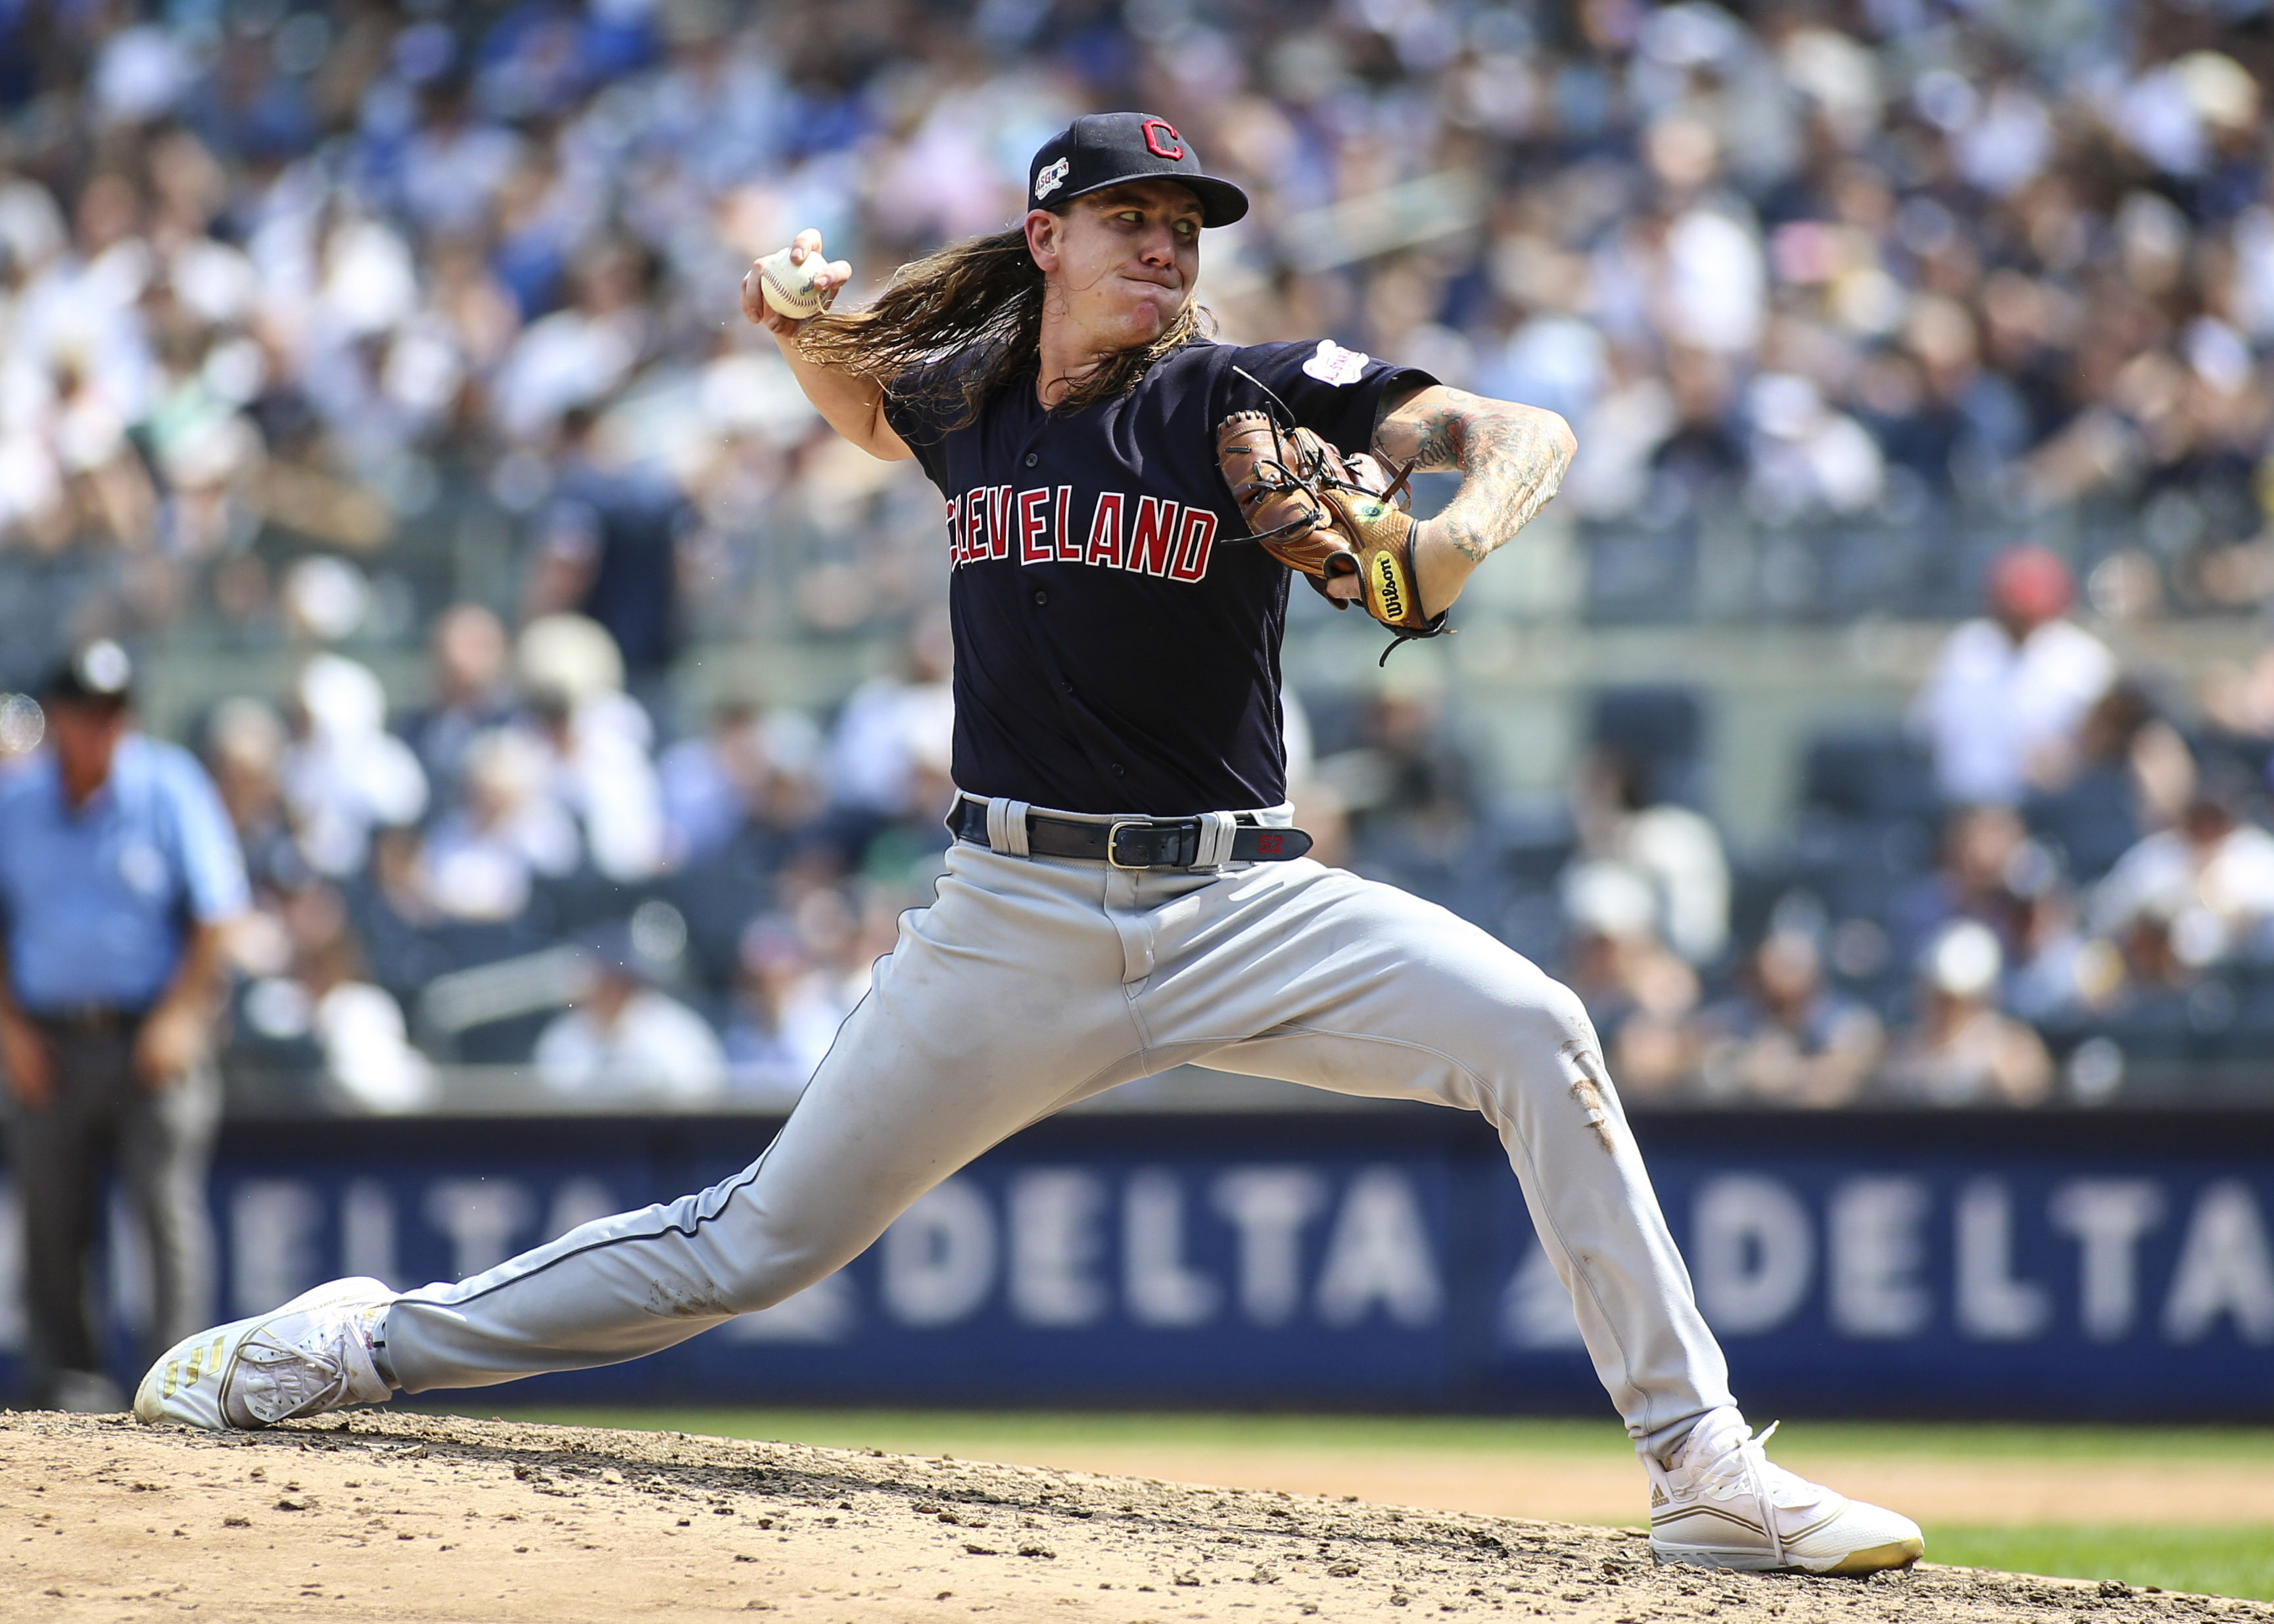 Cleveland Indians lead tight American League wildcard race